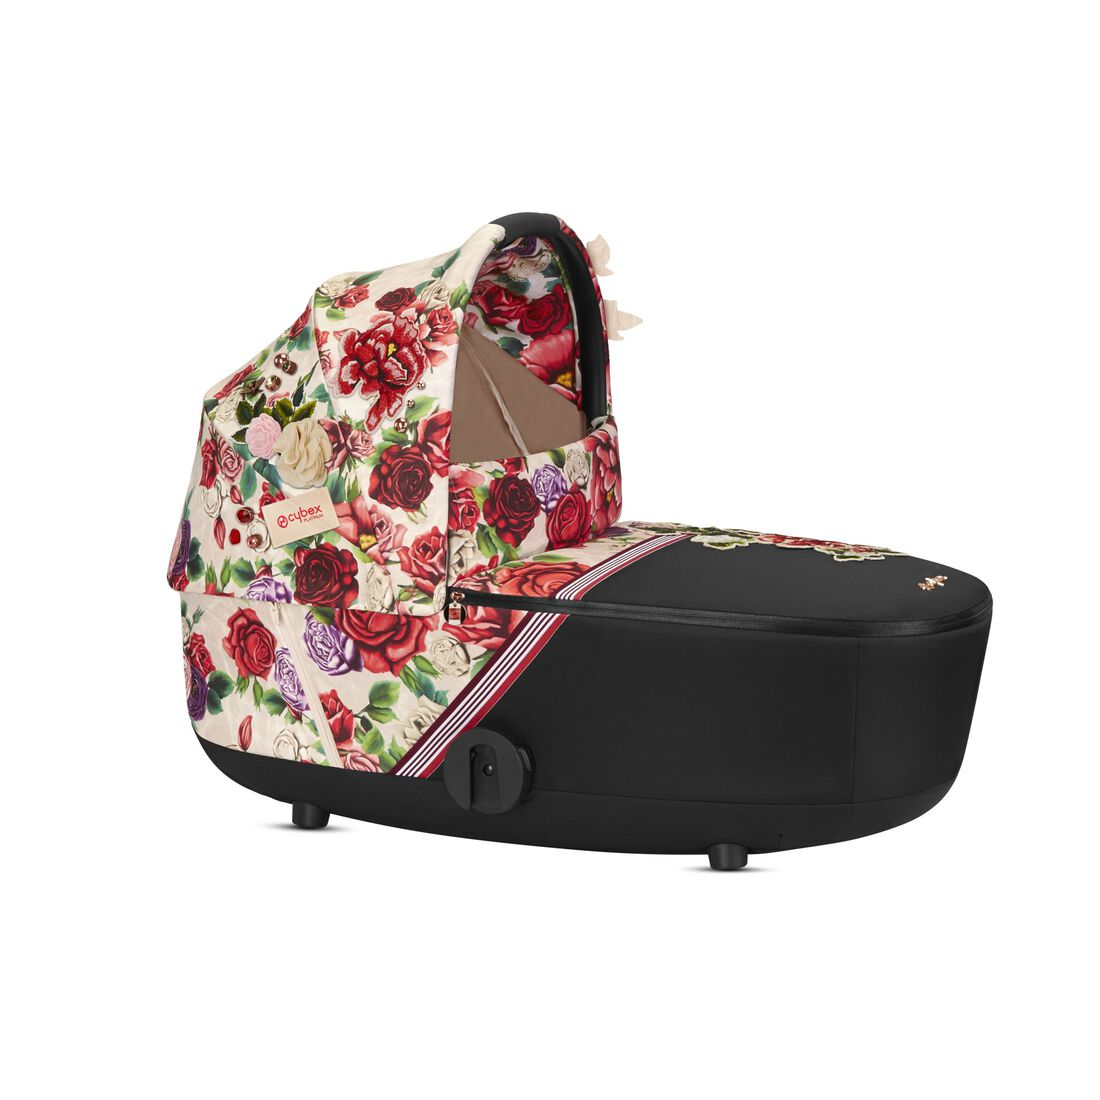 CYBEX Mios Lux Carry Cot - Spring Blossom Light in Spring Blossom Light large Bild 1